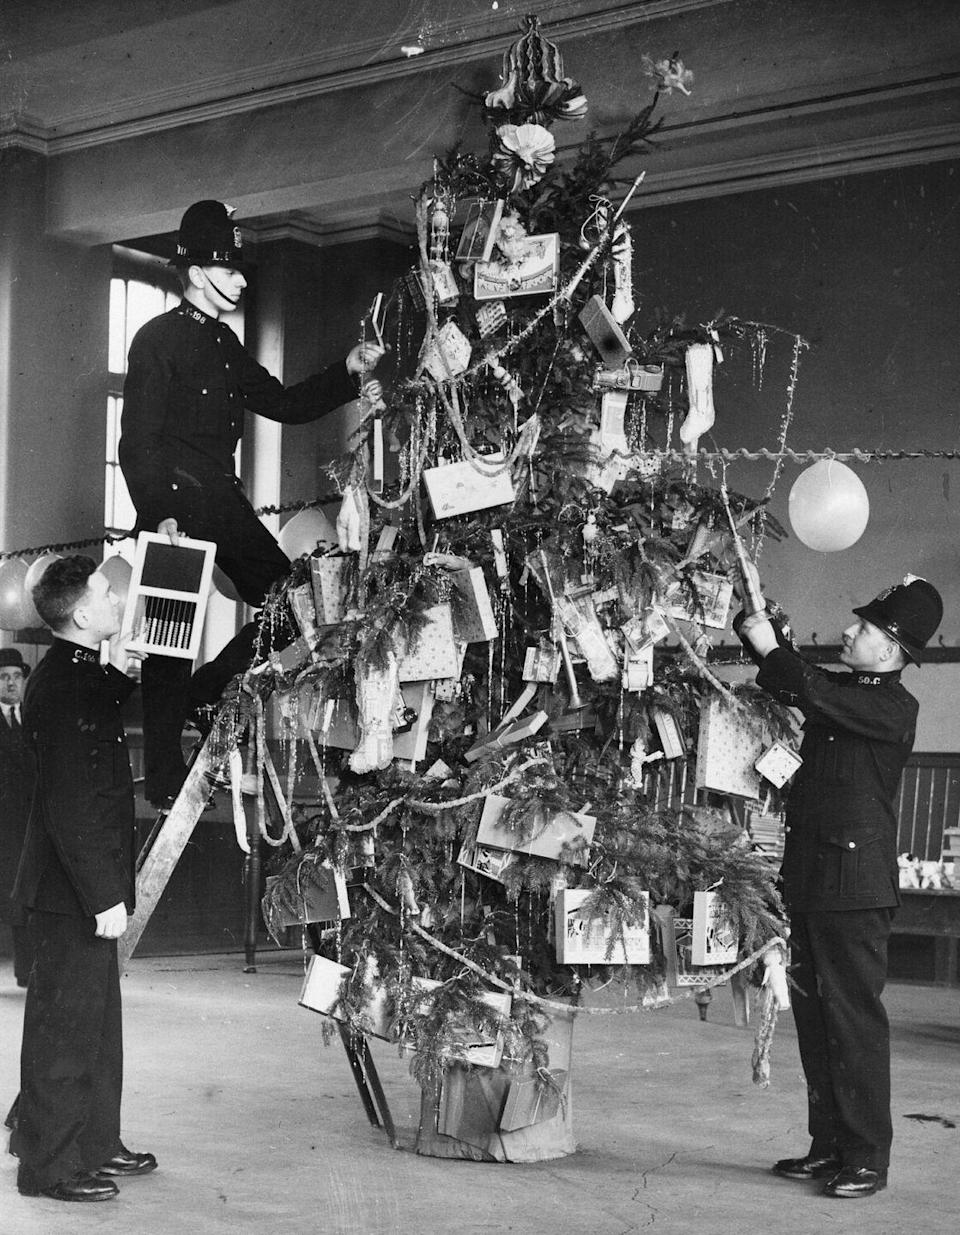 "<p>Who says the fun has to end after Christmas? The tradition of the <a href=""https://www.countryliving.com/entertaining/g5079/new-year-tree/"" rel=""nofollow noopener"" target=""_blank"" data-ylk=""slk:New Year's tree"" class=""link rapid-noclick-resp"">New Year's tree</a> goes all the way back to the 1600s, and you can easily transition your Tannenbaum to suit the celebrations. </p><p><a class=""link rapid-noclick-resp"" href=""https://www.amazon.com/Oh-New-Years-Tree-Decorating/dp/B01N2PIMFW?tag=syn-yahoo-20&ascsubtag=%5Bartid%7C10050.g.5075%5Bsrc%7Cyahoo-us"" rel=""nofollow noopener"" target=""_blank"" data-ylk=""slk:SHOP NEW YEAR'S TREE KIT"">SHOP NEW YEAR'S TREE KIT</a> </p>"